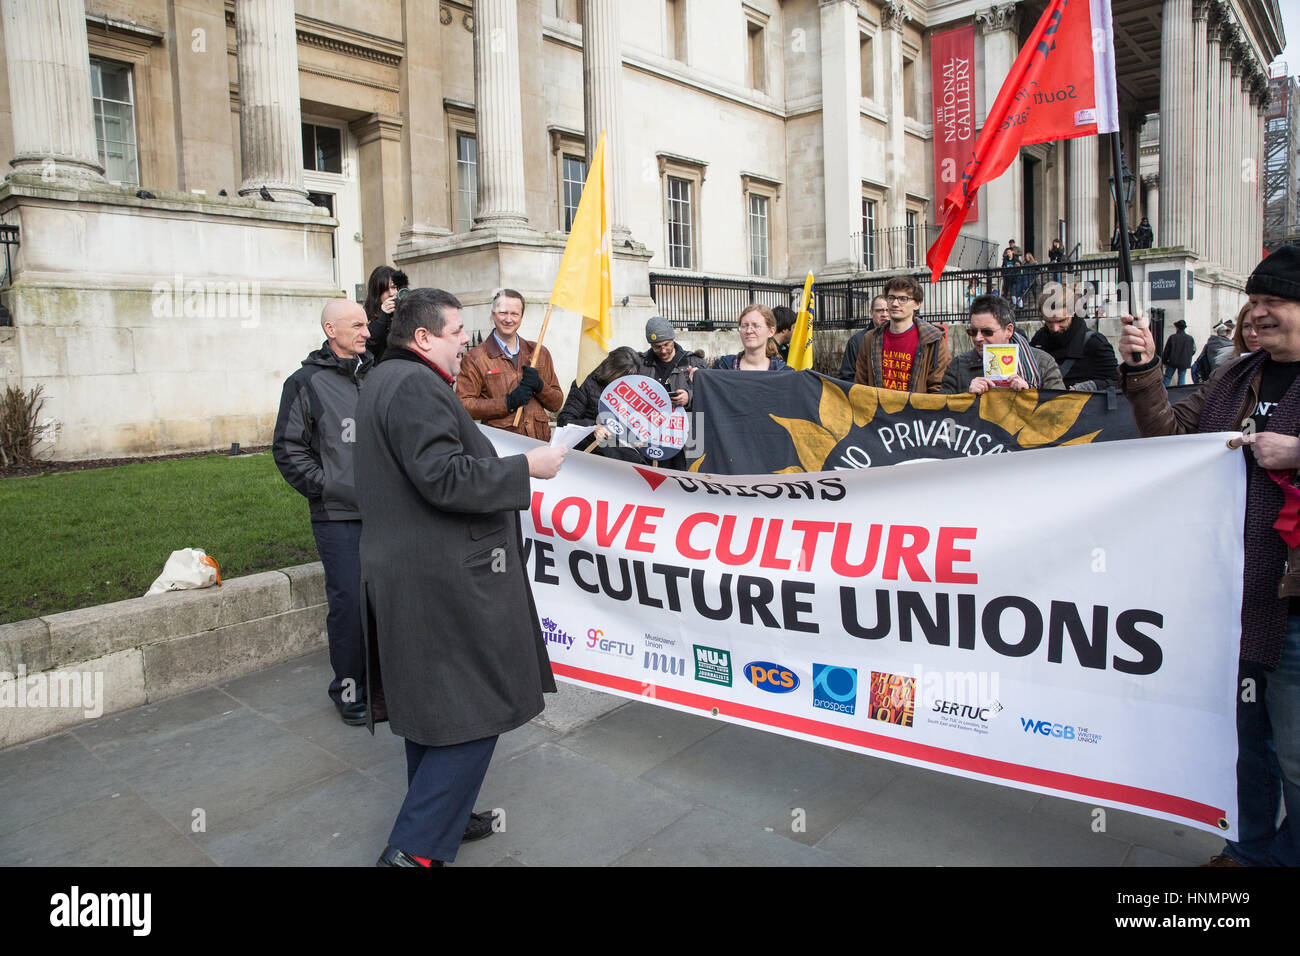 London, UK. 14th Feb, 2017. Punk poet Tim Wells performs for trade unionists and supporters from the Show Culture - Stock Image